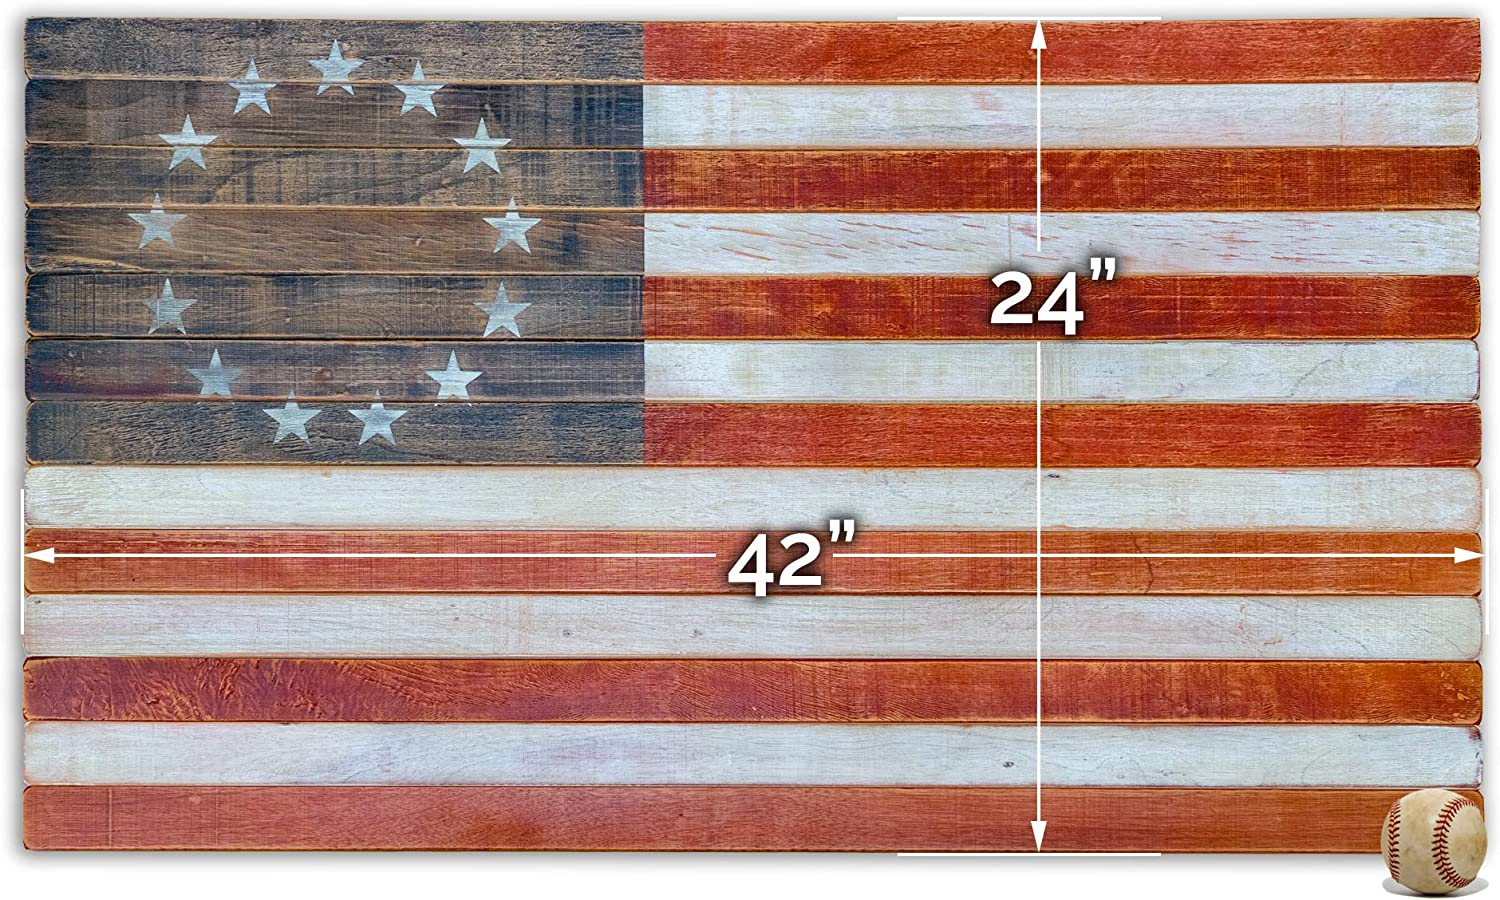 Betsy Ross Flag Vintage American Flag Art - Wooden Wall Décor - High Quality Made in USA American Echoes (42